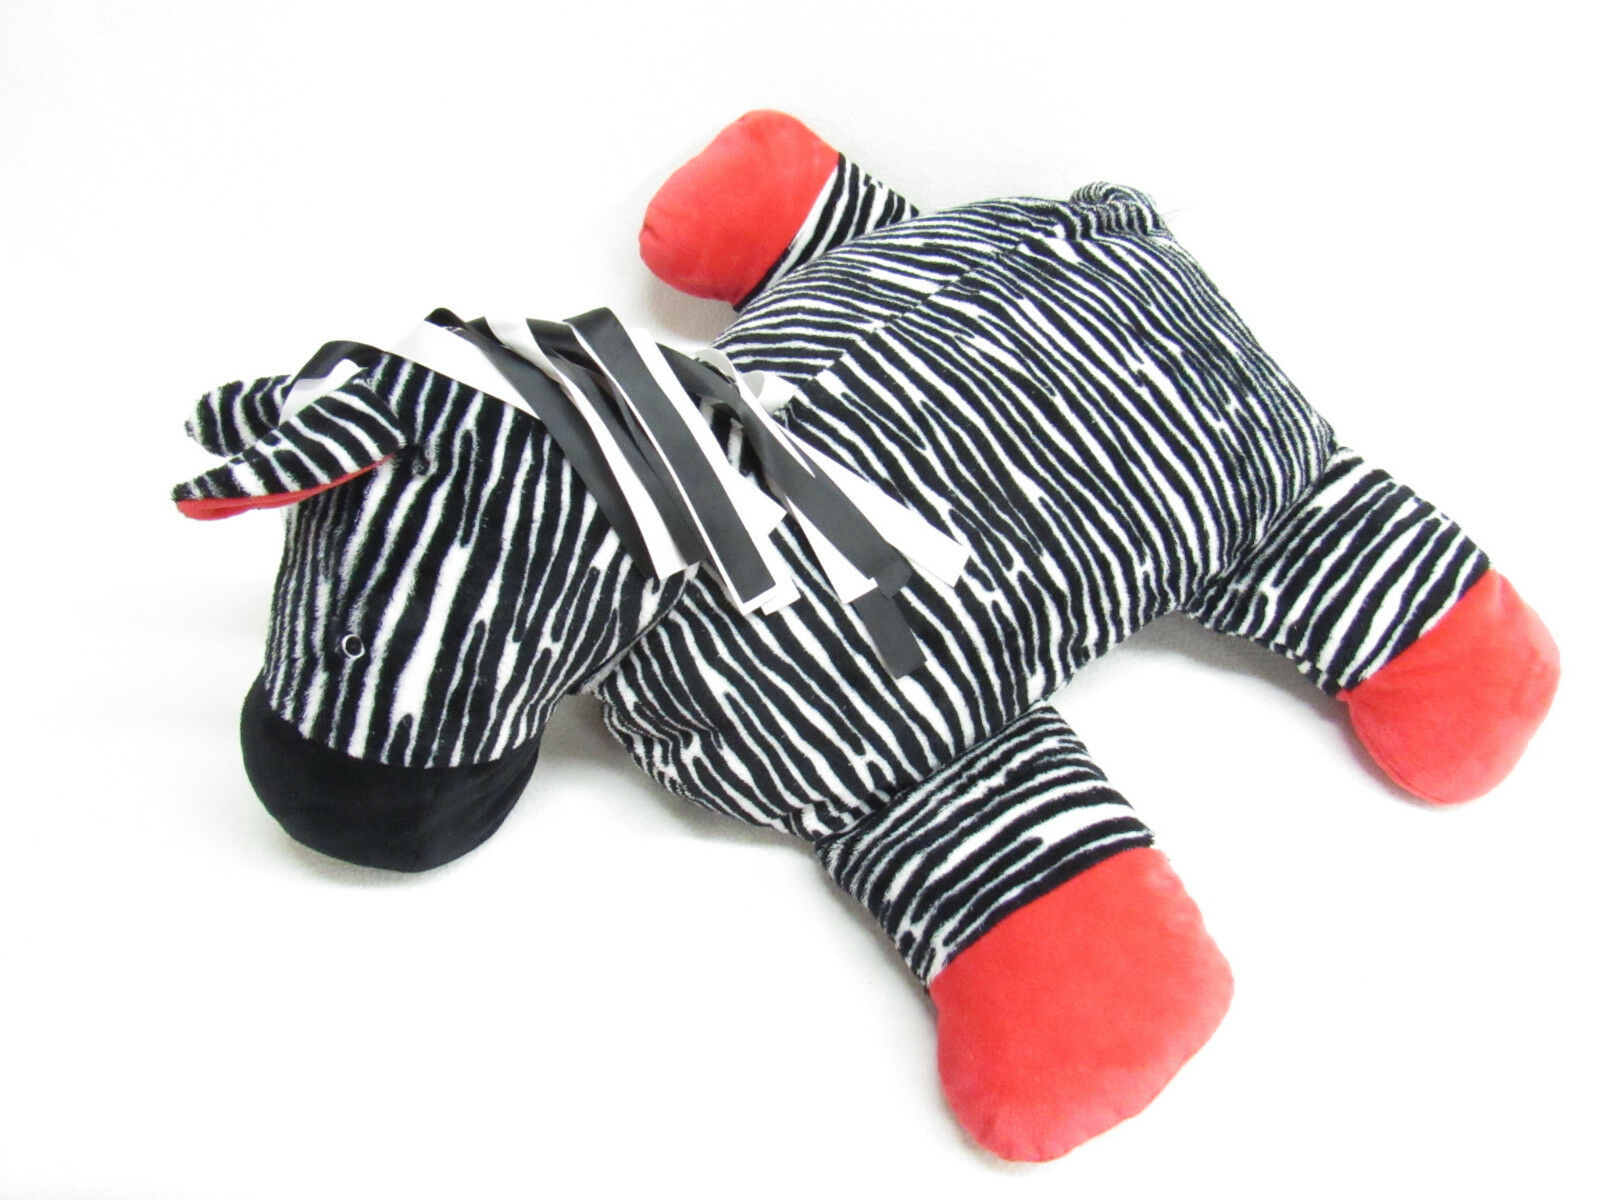 NORTH AMERICAN orso CO ZEBRA PILLOW RIBBONS rosso rosso rosso 98cd32